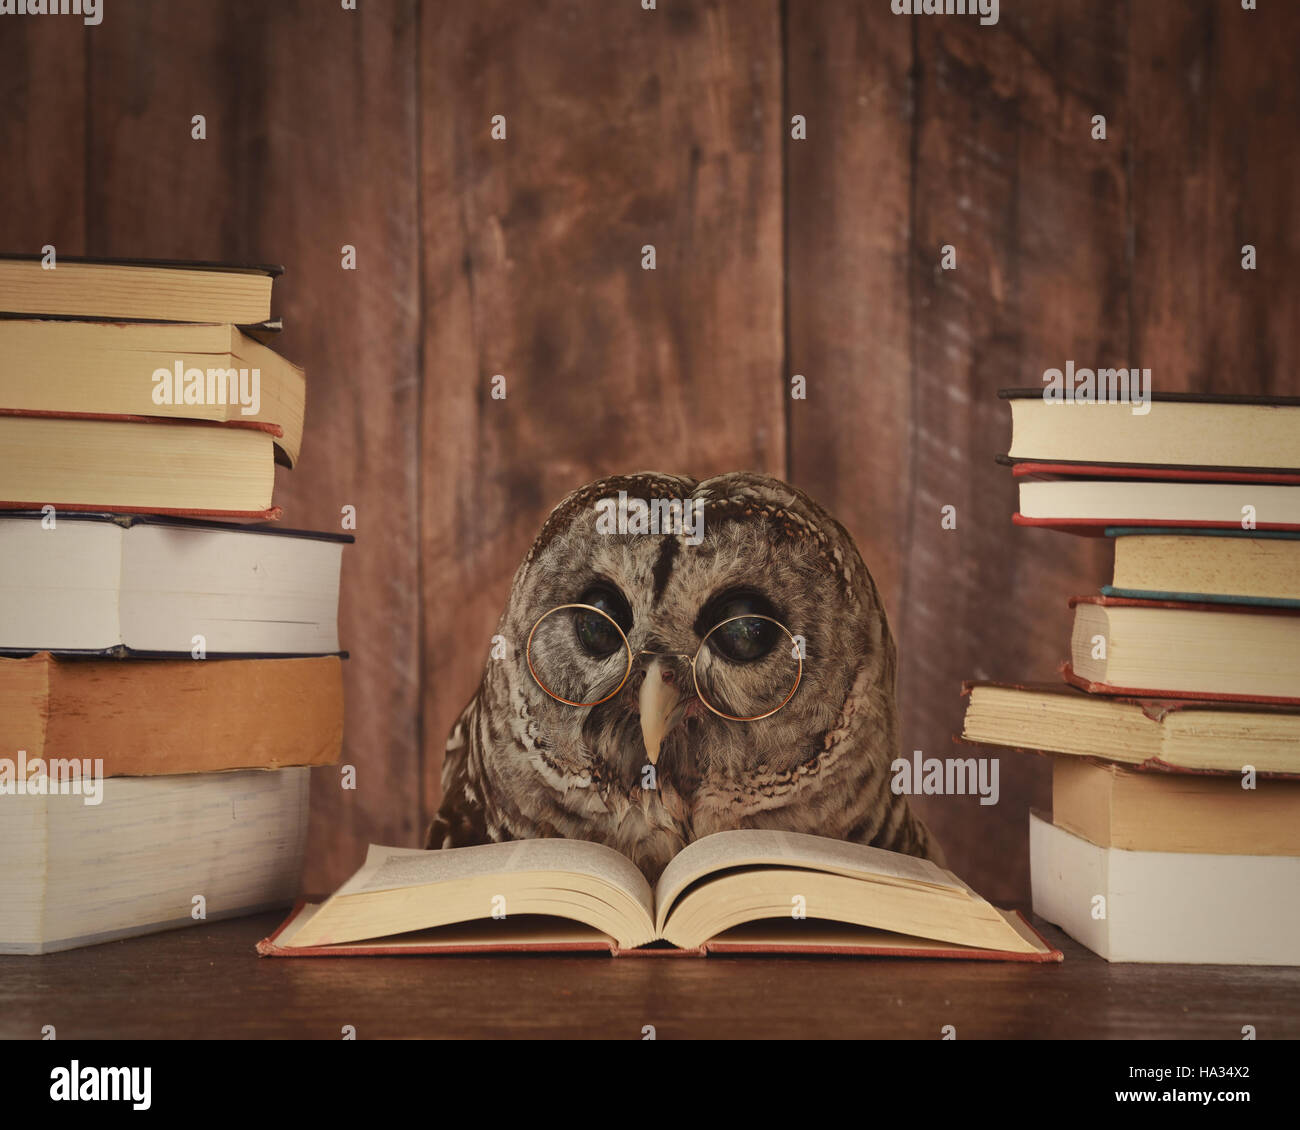 An owl animal with glasses is reading a book in the woods for an education or school concept. Stock Photo